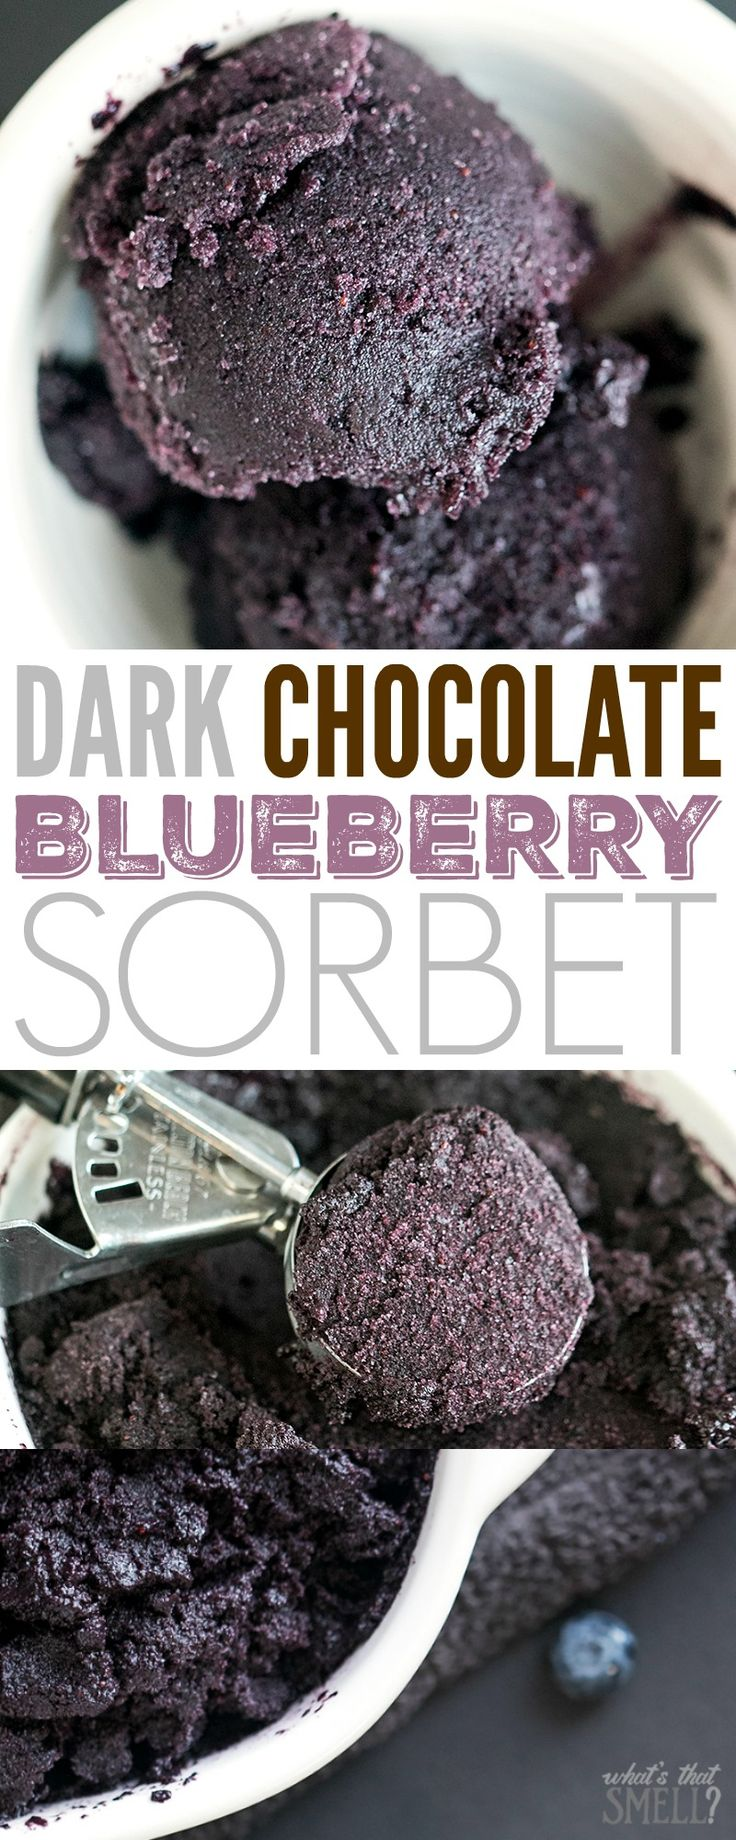 Dark Chocolate Blueberry Sorbet - this dairy free, gluten-free, Vegan sorbet is refreshing, delicious and a healthier frozen treat option. You can make ice pops with it or serve it in bowls like ice cream. Easy and yummy! AD #LoveMySilk #Nutchello #SilkCrowd